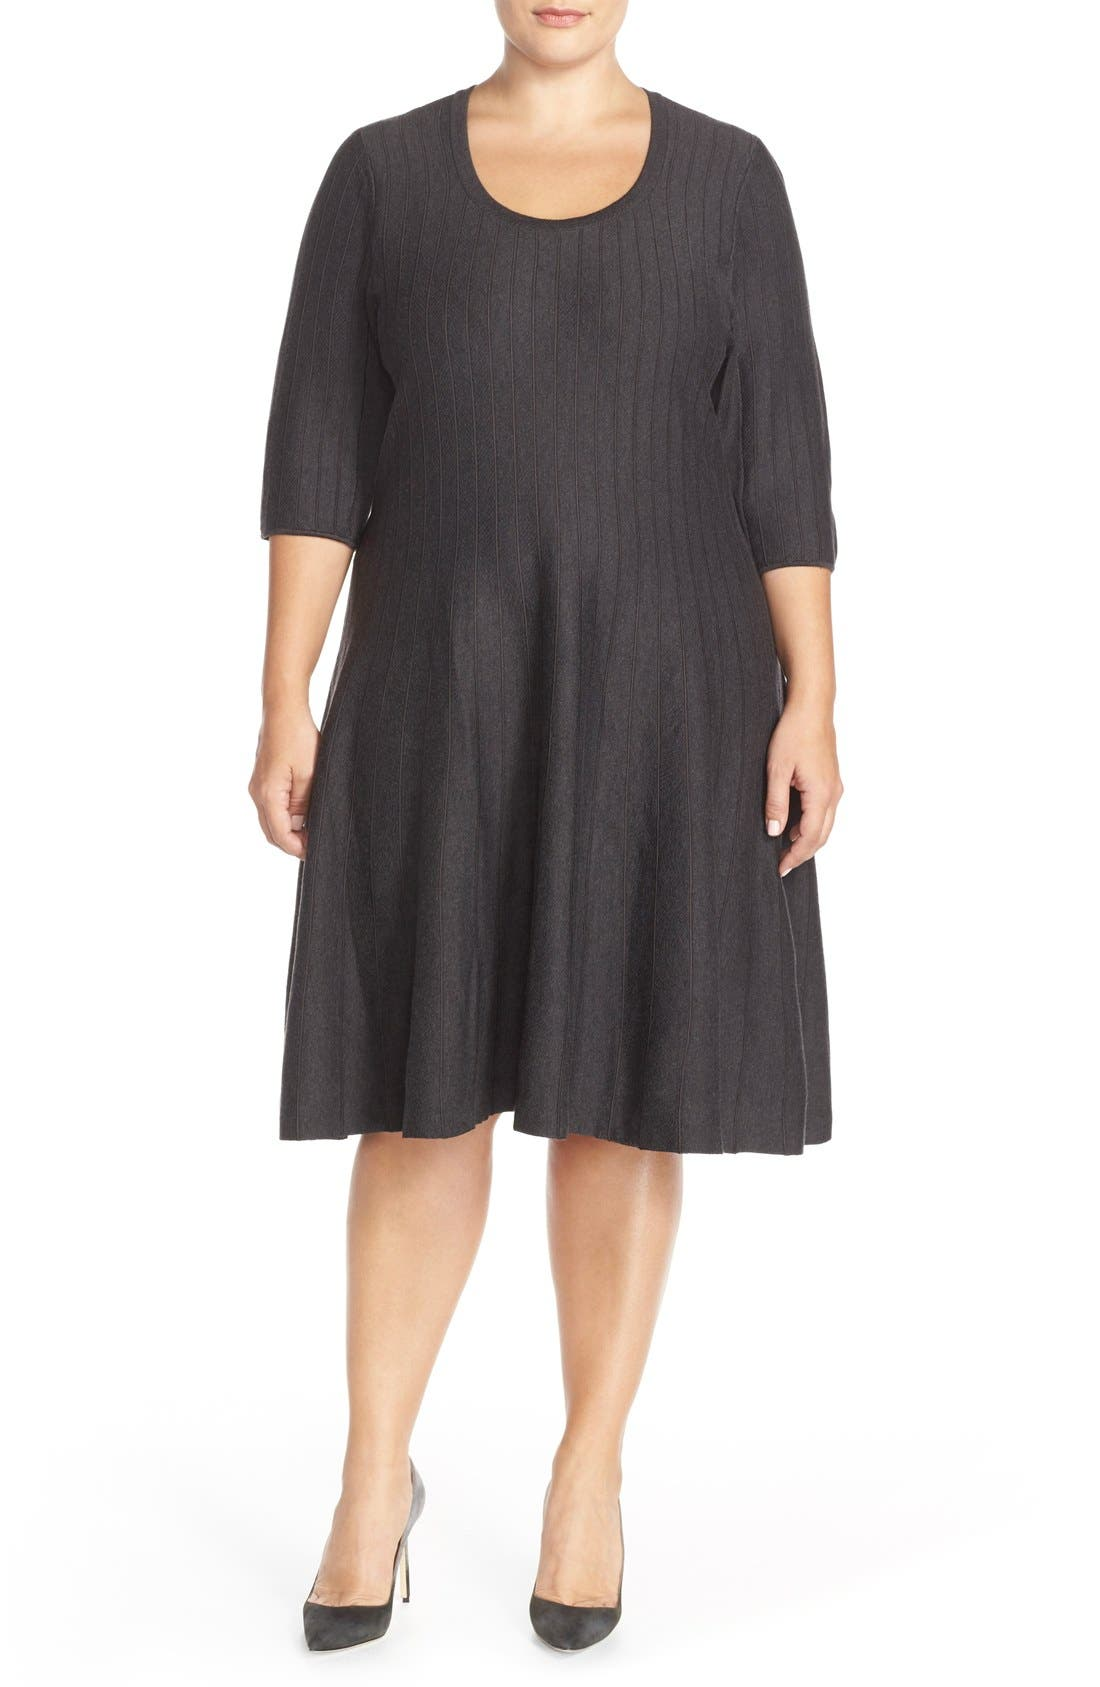 'Twirl' Elbow Sleeve Knit Fit & Flare Dress,                             Main thumbnail 1, color,                             PHANTOM HEATHER